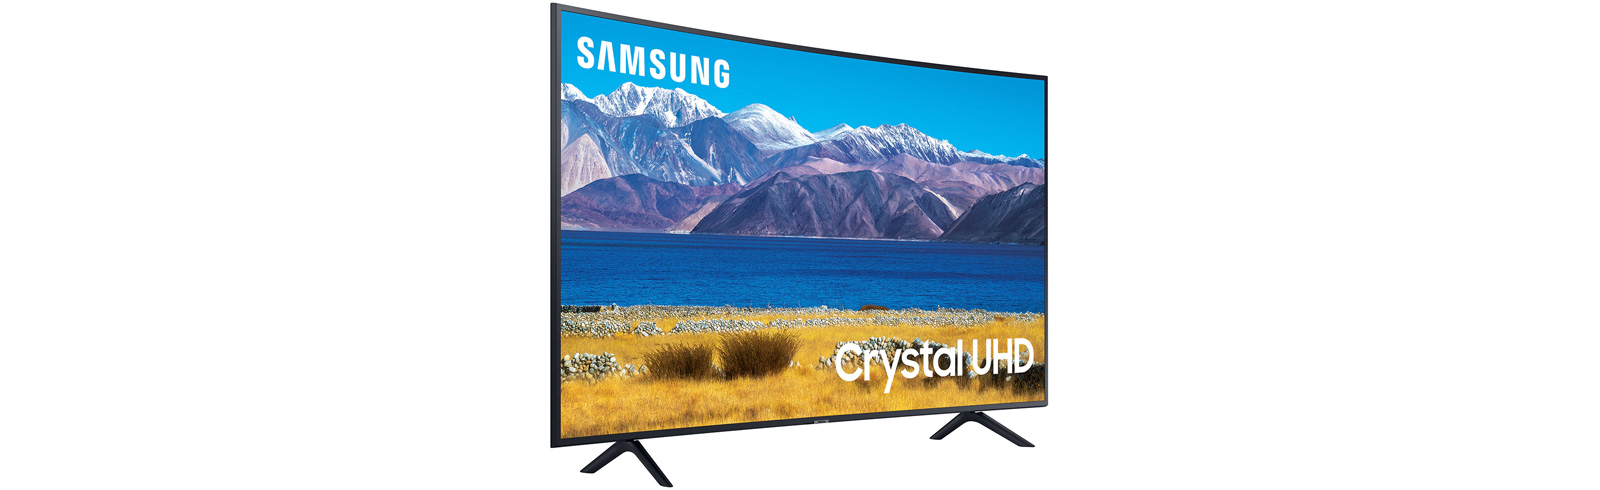 The Samsung TU8300 curved 4K TV series goes official in the USA